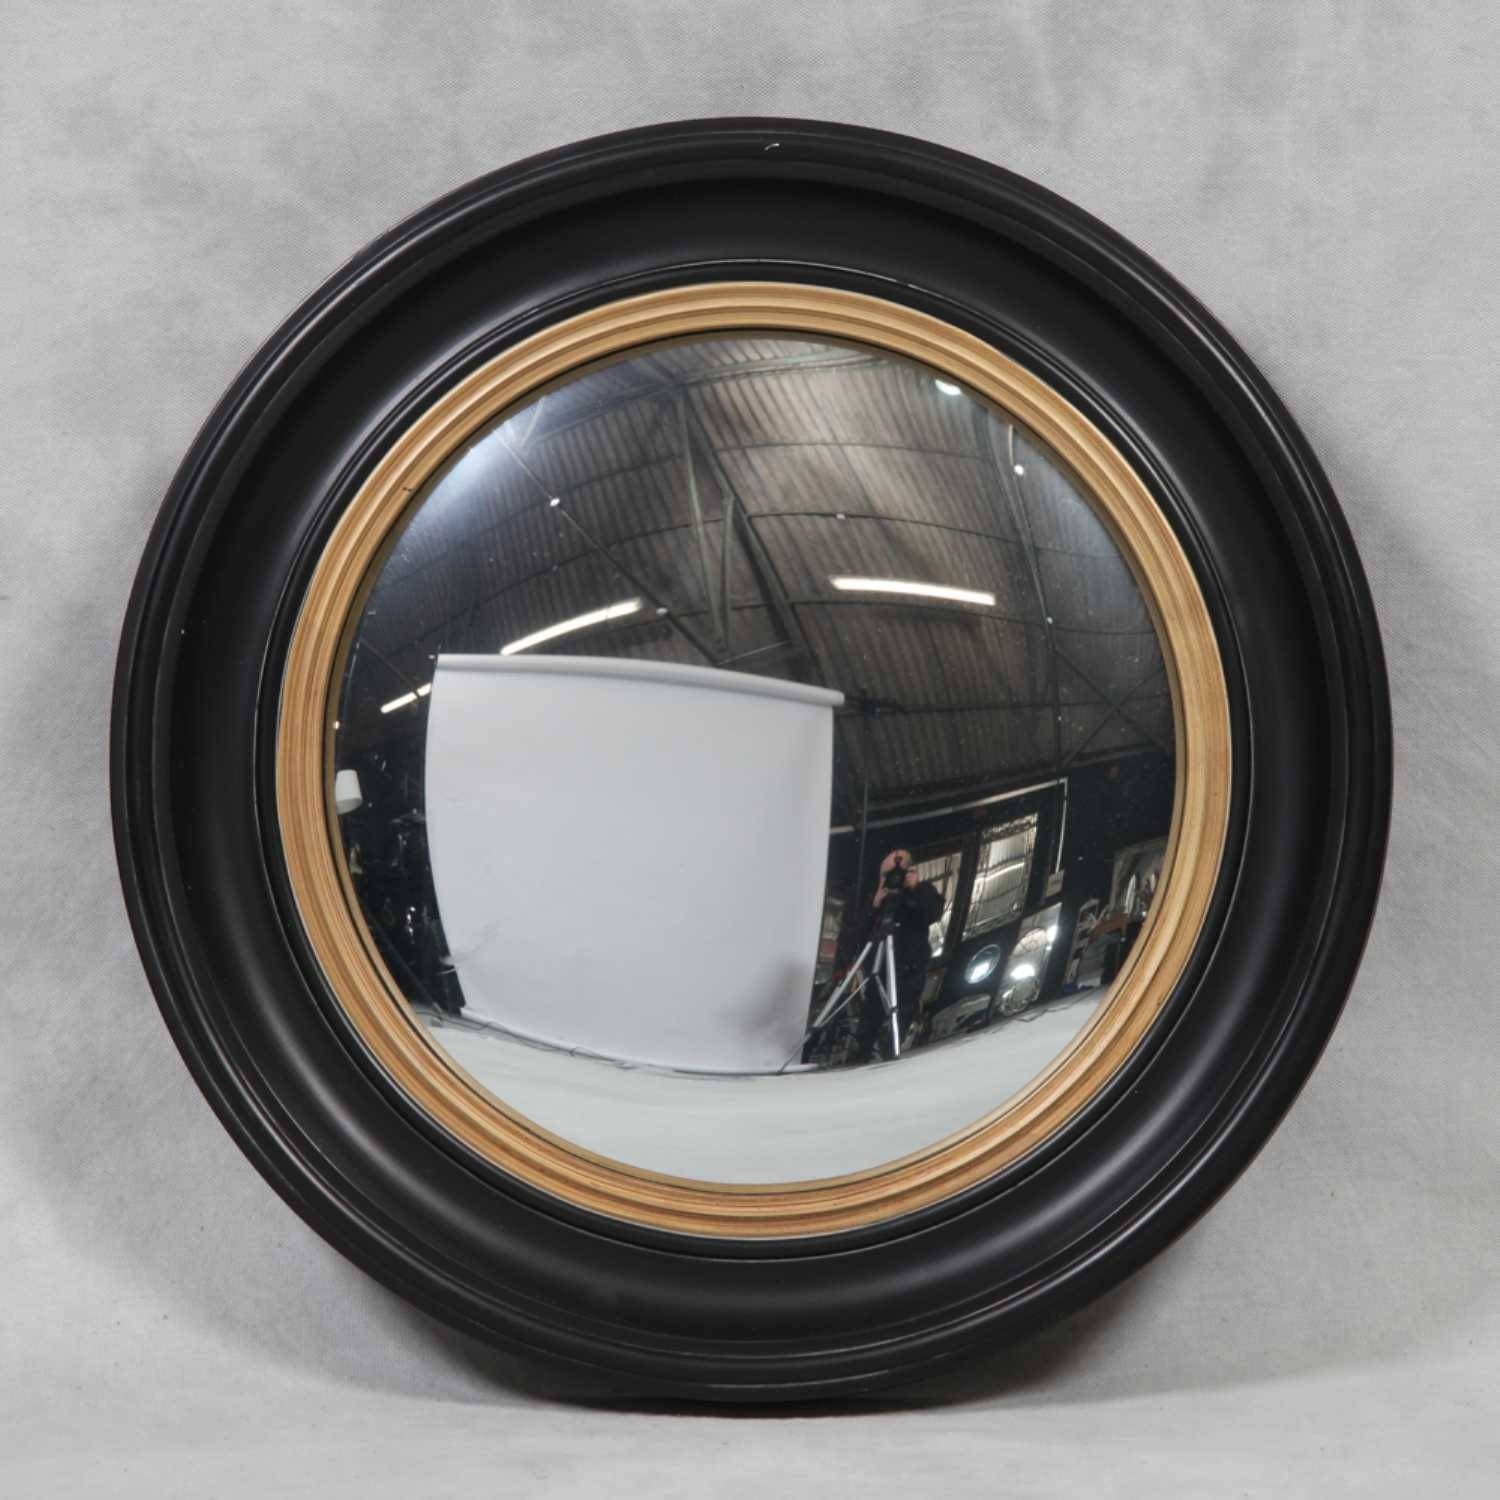 M112 London Large Round Black And Gold Convex Wall Mirror pertaining to Round Convex Wall Mirrors (Image 8 of 15)